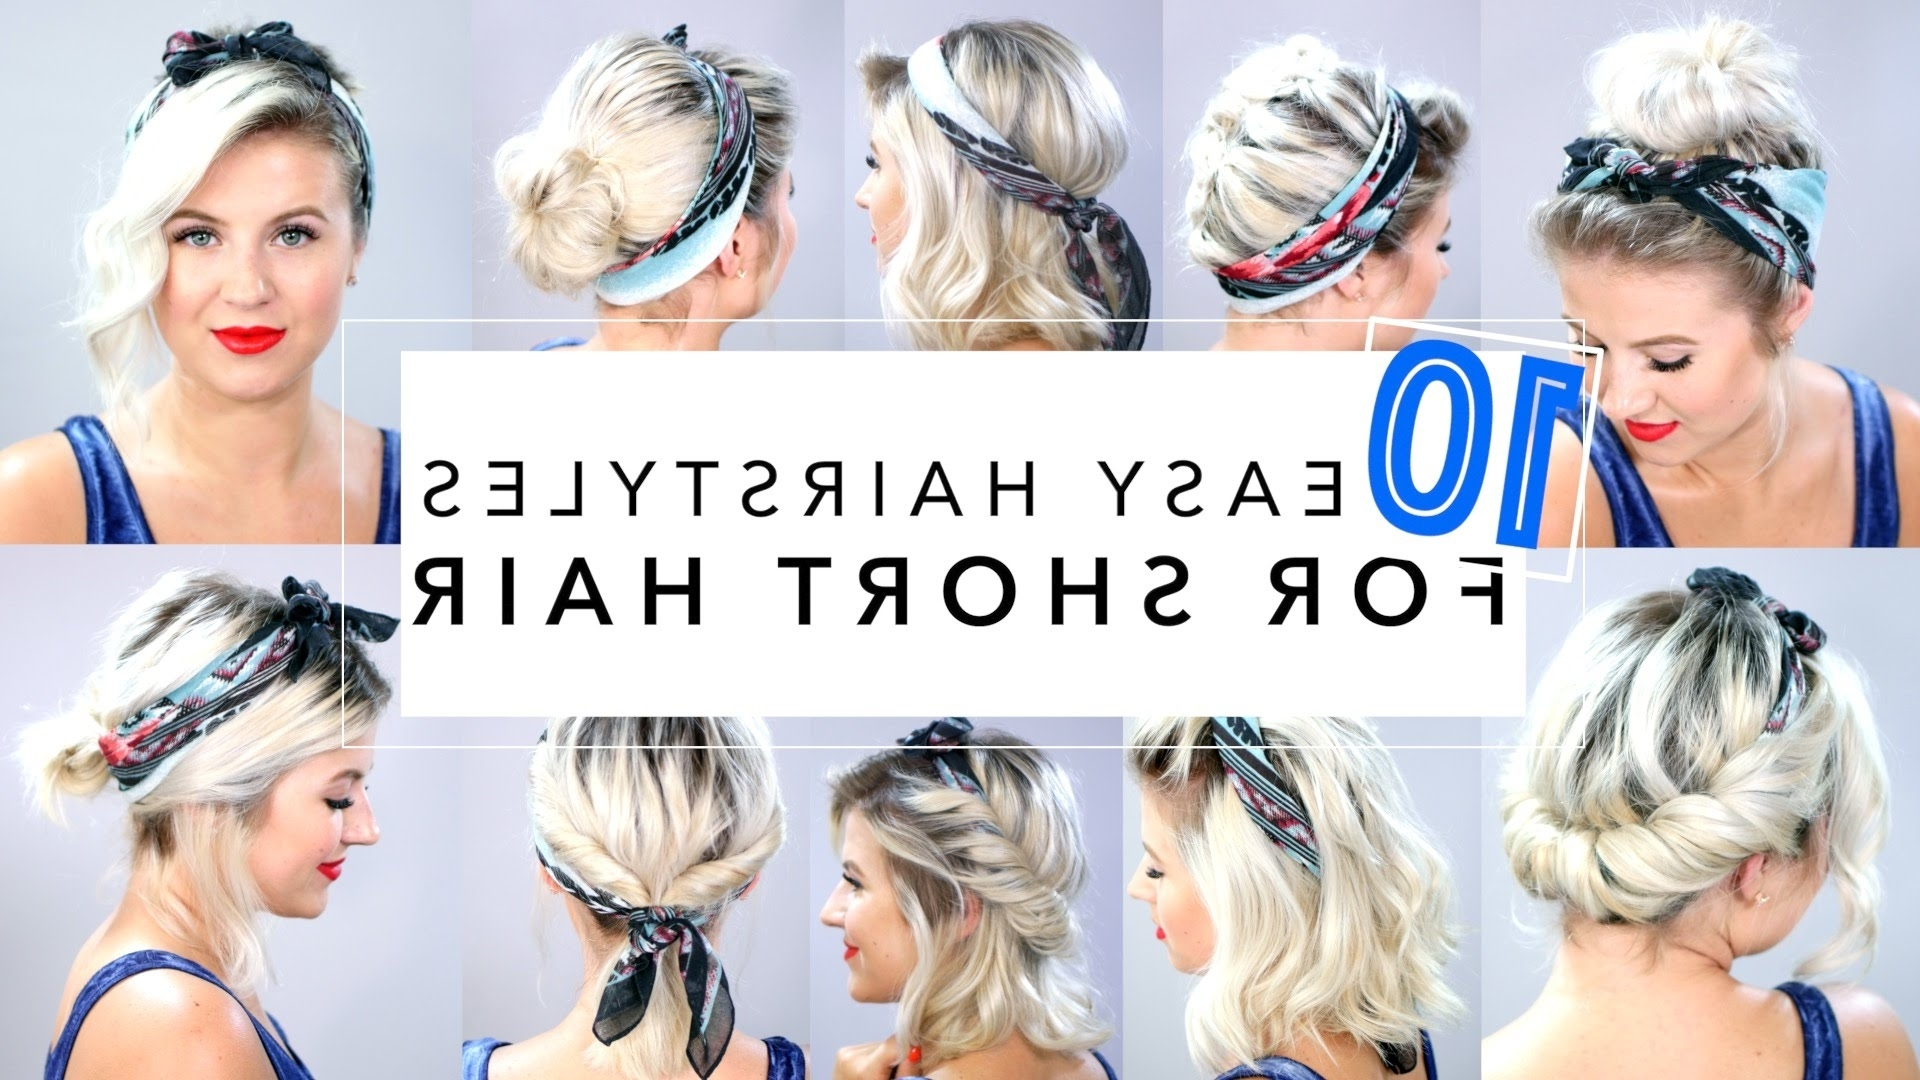 View s of Pixie Hairstyles With Headband Showing 10 of 15 s